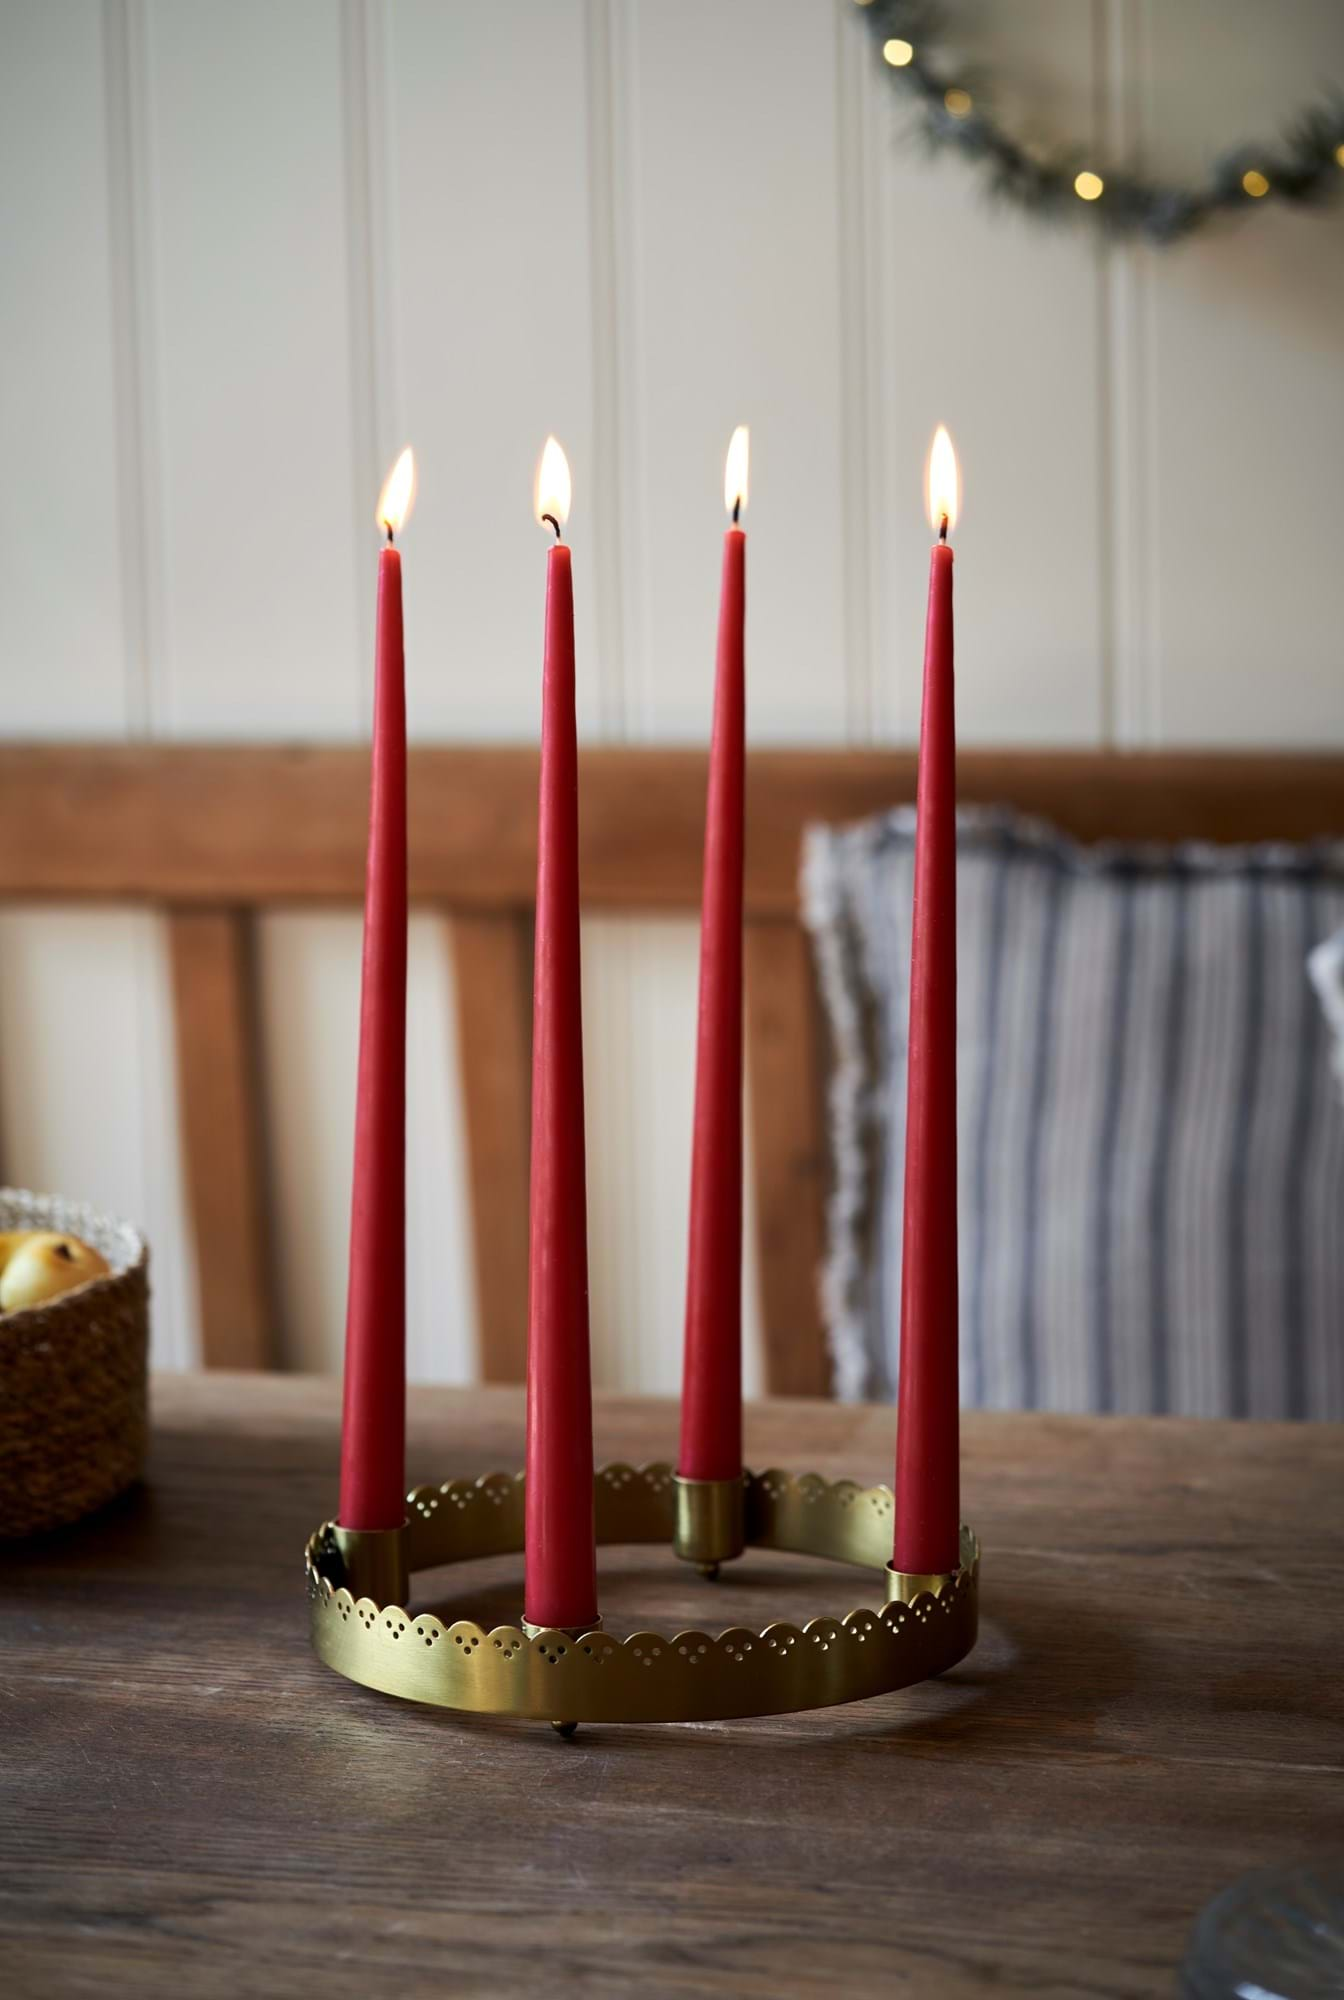 Advent Candle Holder Get Your Advent Candle Holder Here Sostrene Grene